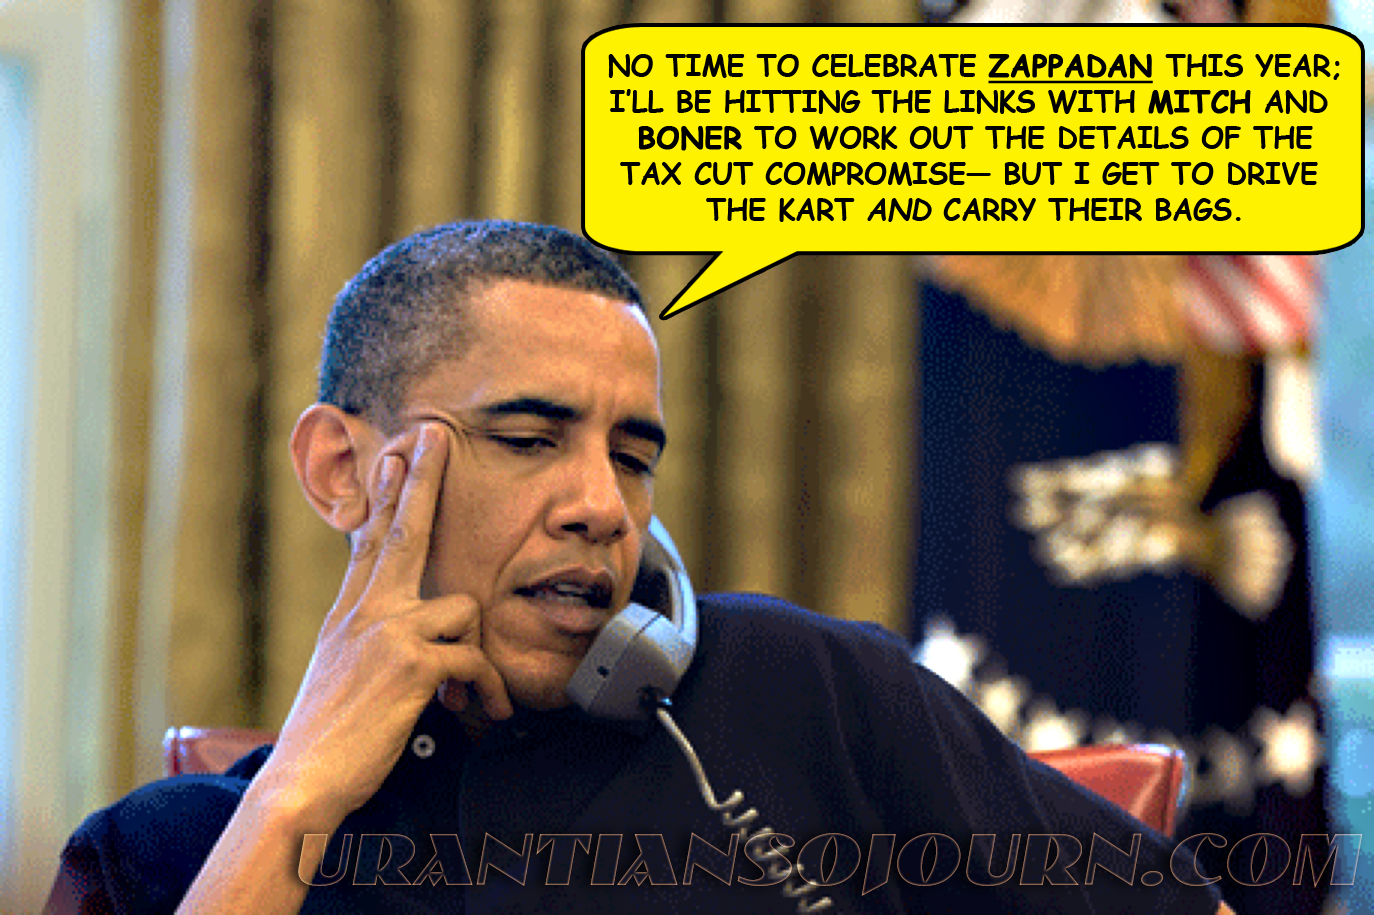 Obama Compromises On ZAPPADAN